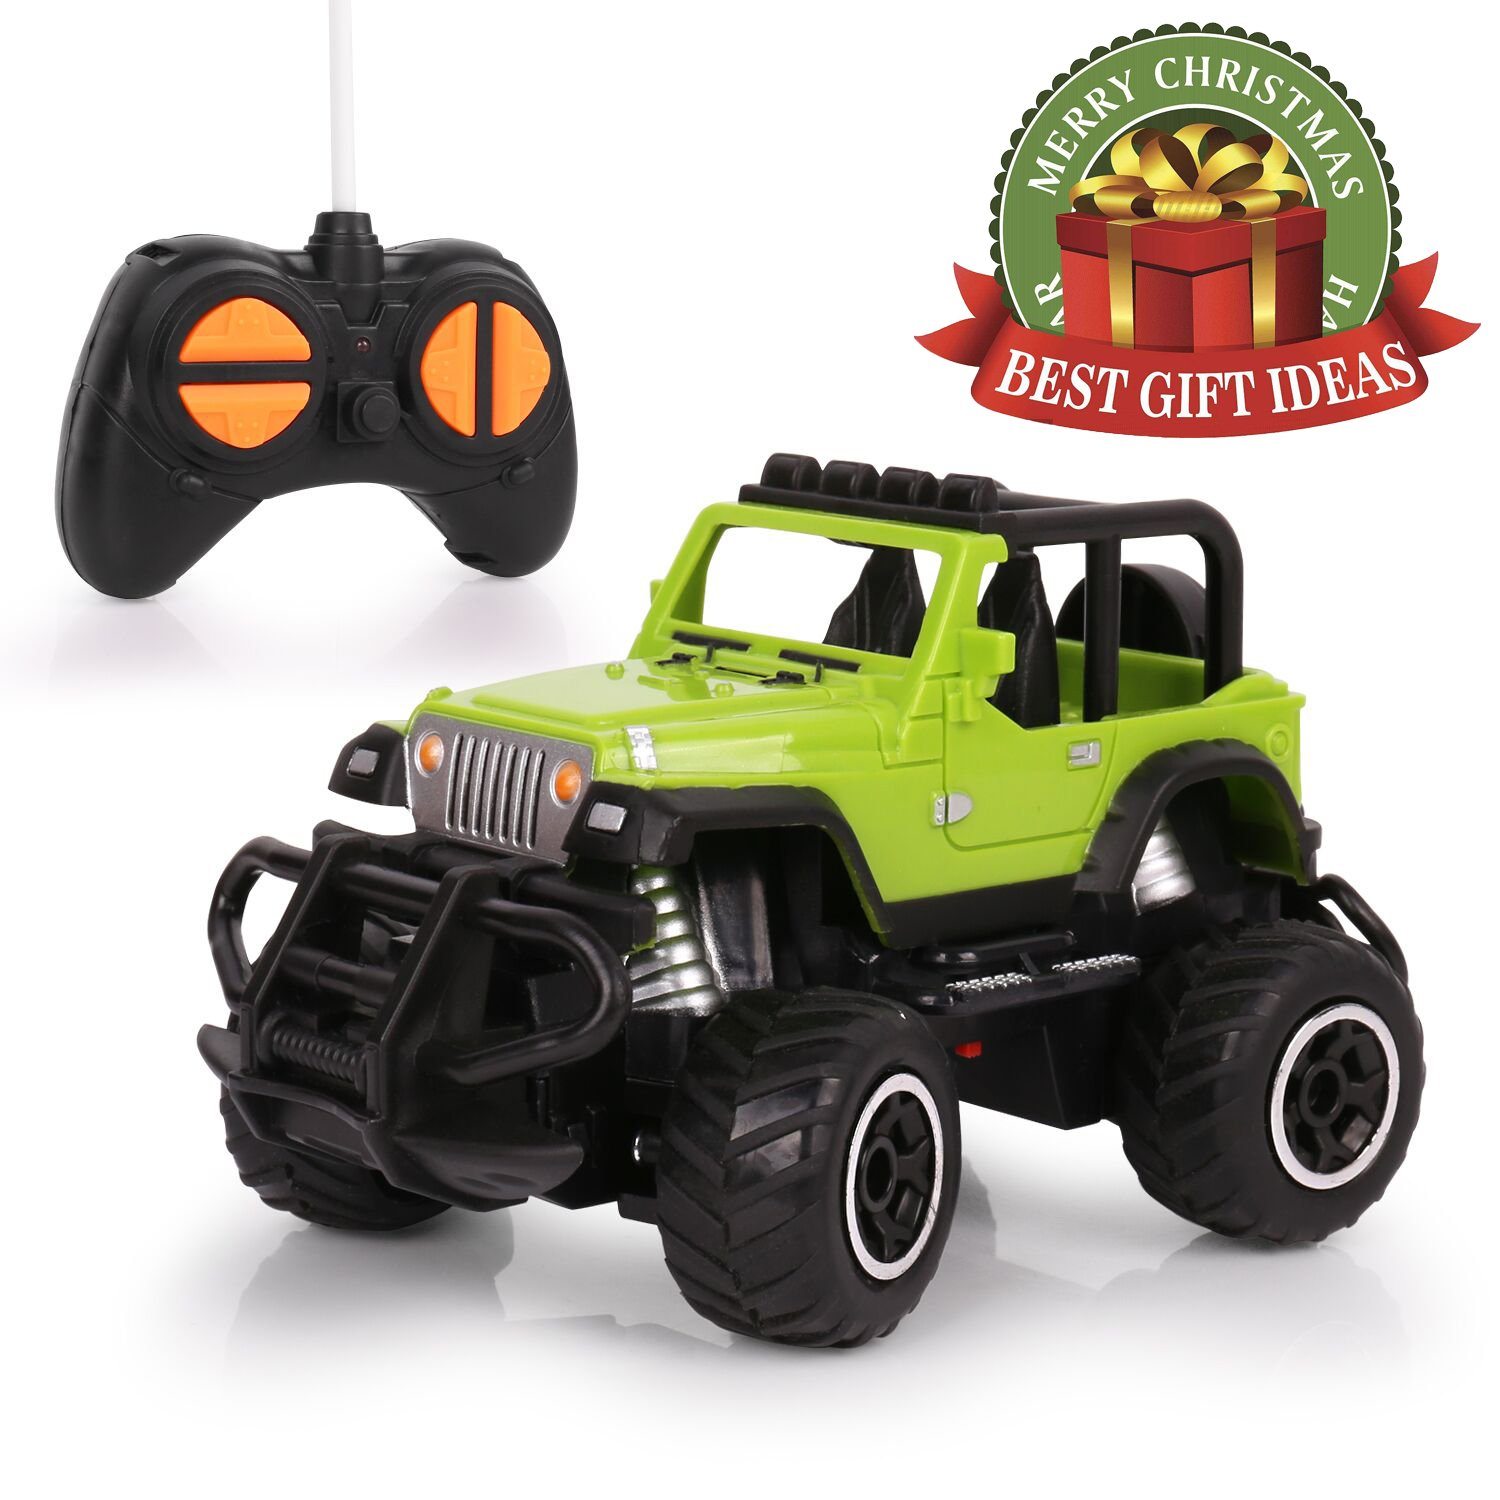 Top Remote Control toys for toddlers Images | Children ...